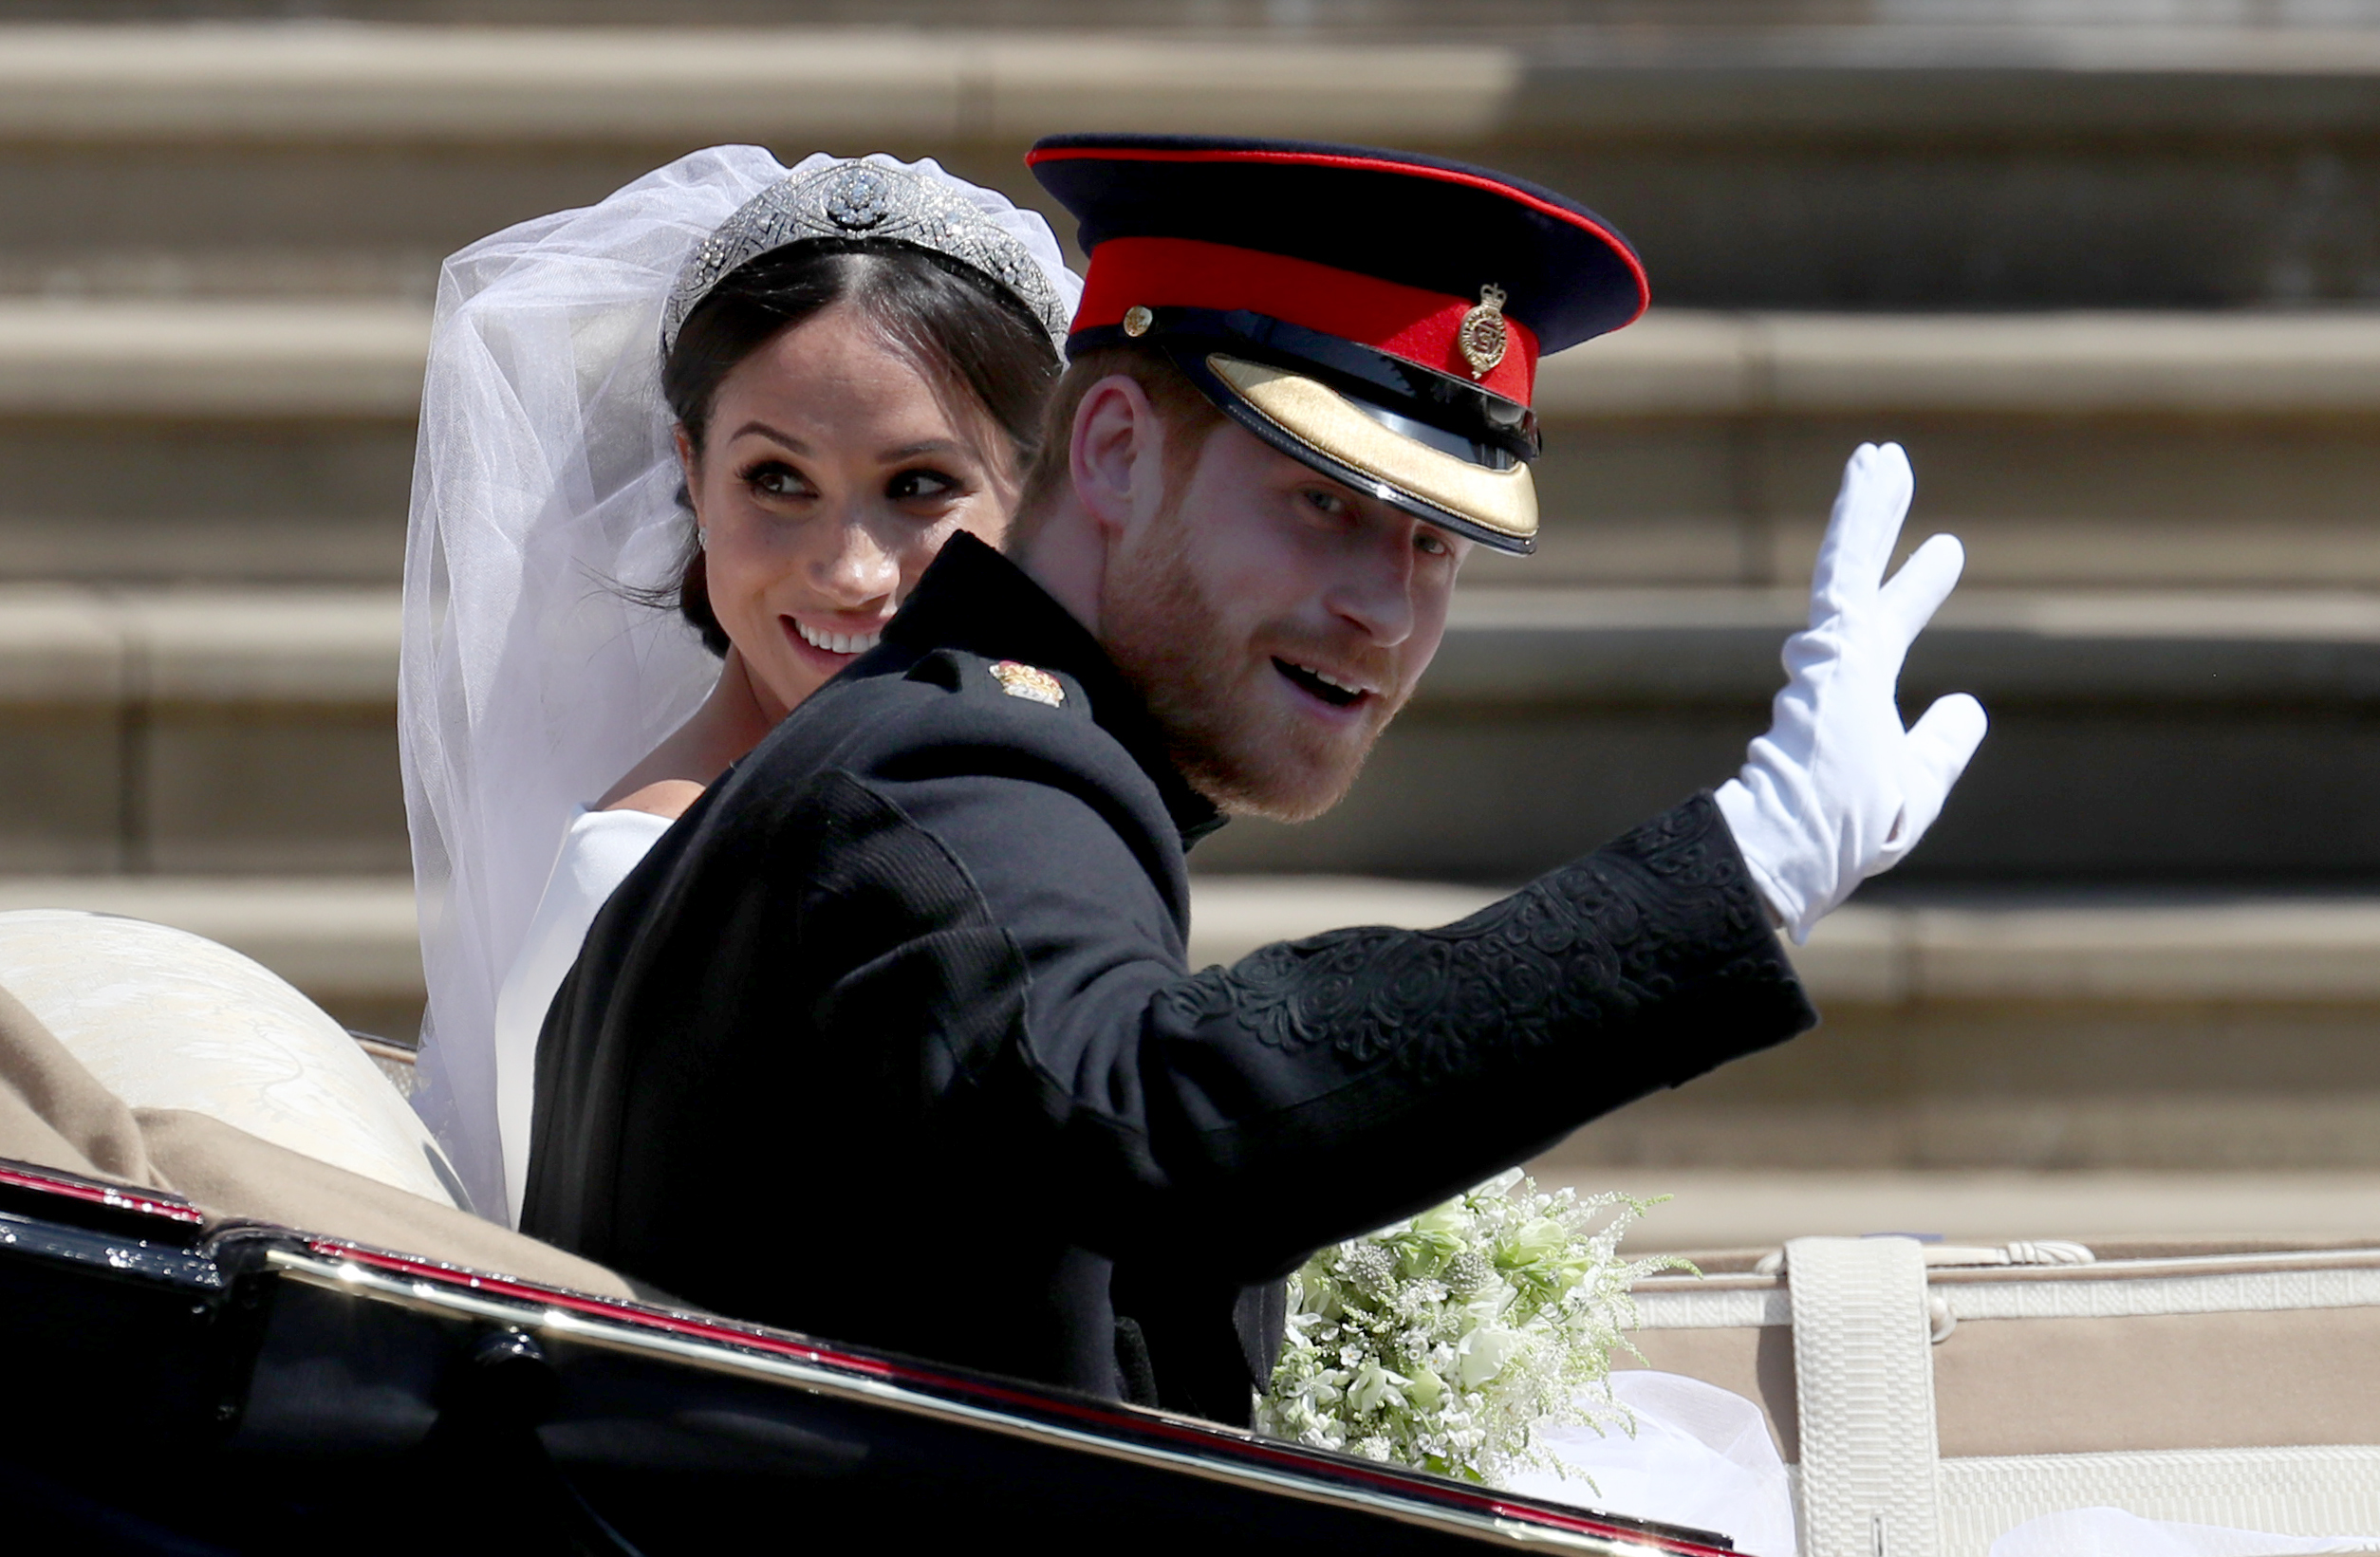 Royal wedding prince harry and meghan markle in carriage